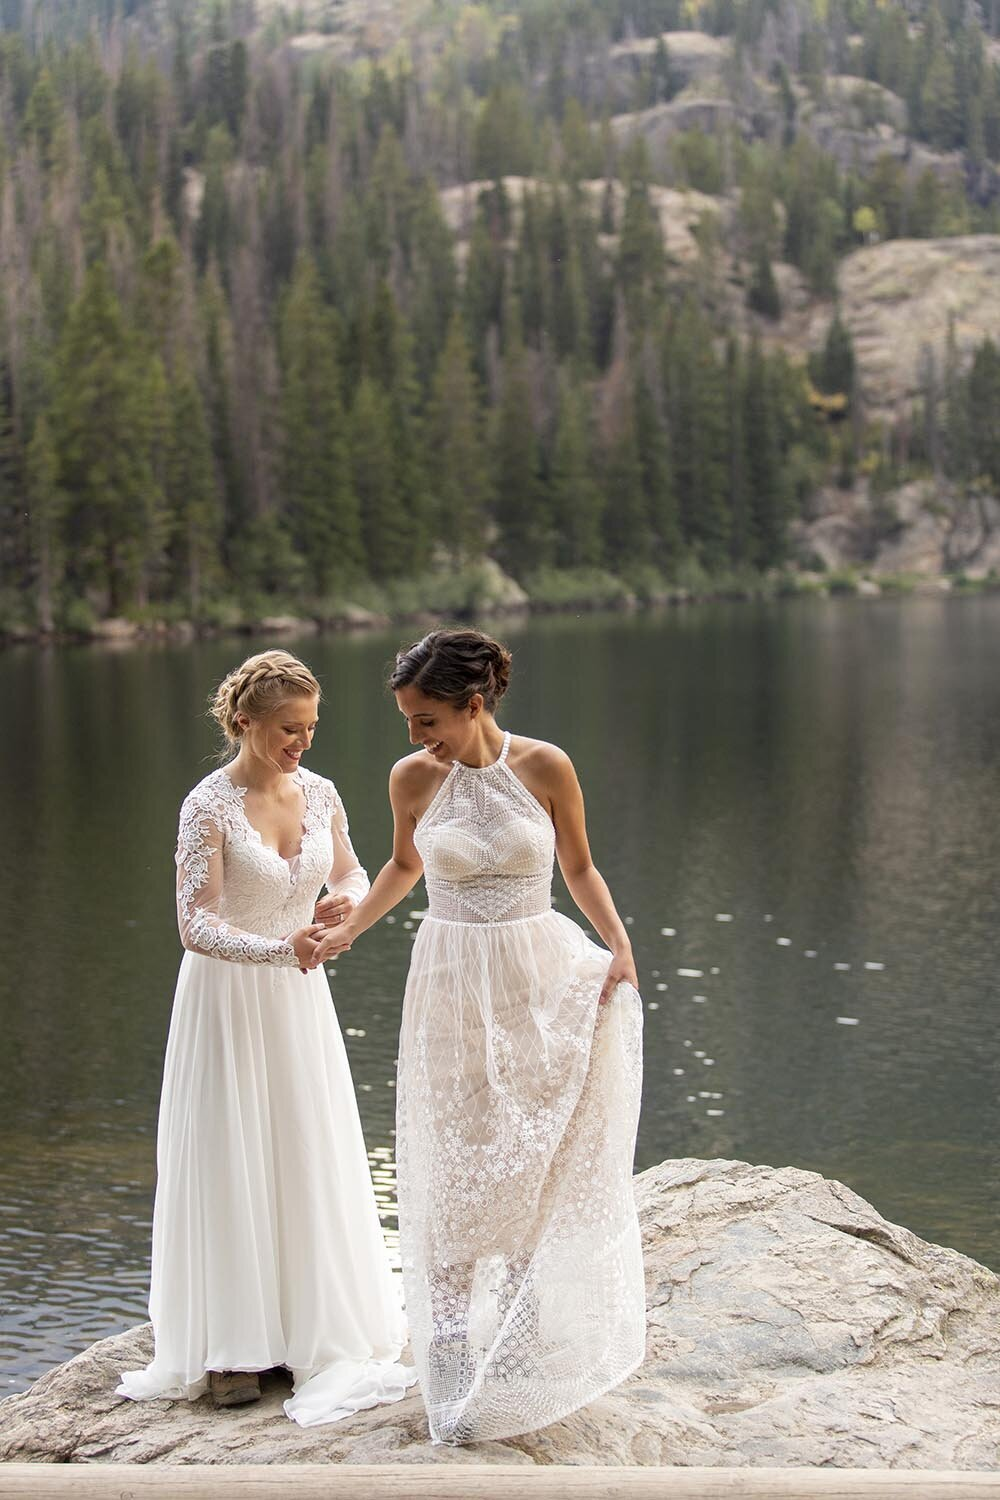 2020RockyMountainNationalParkKelseyAlexElopement006